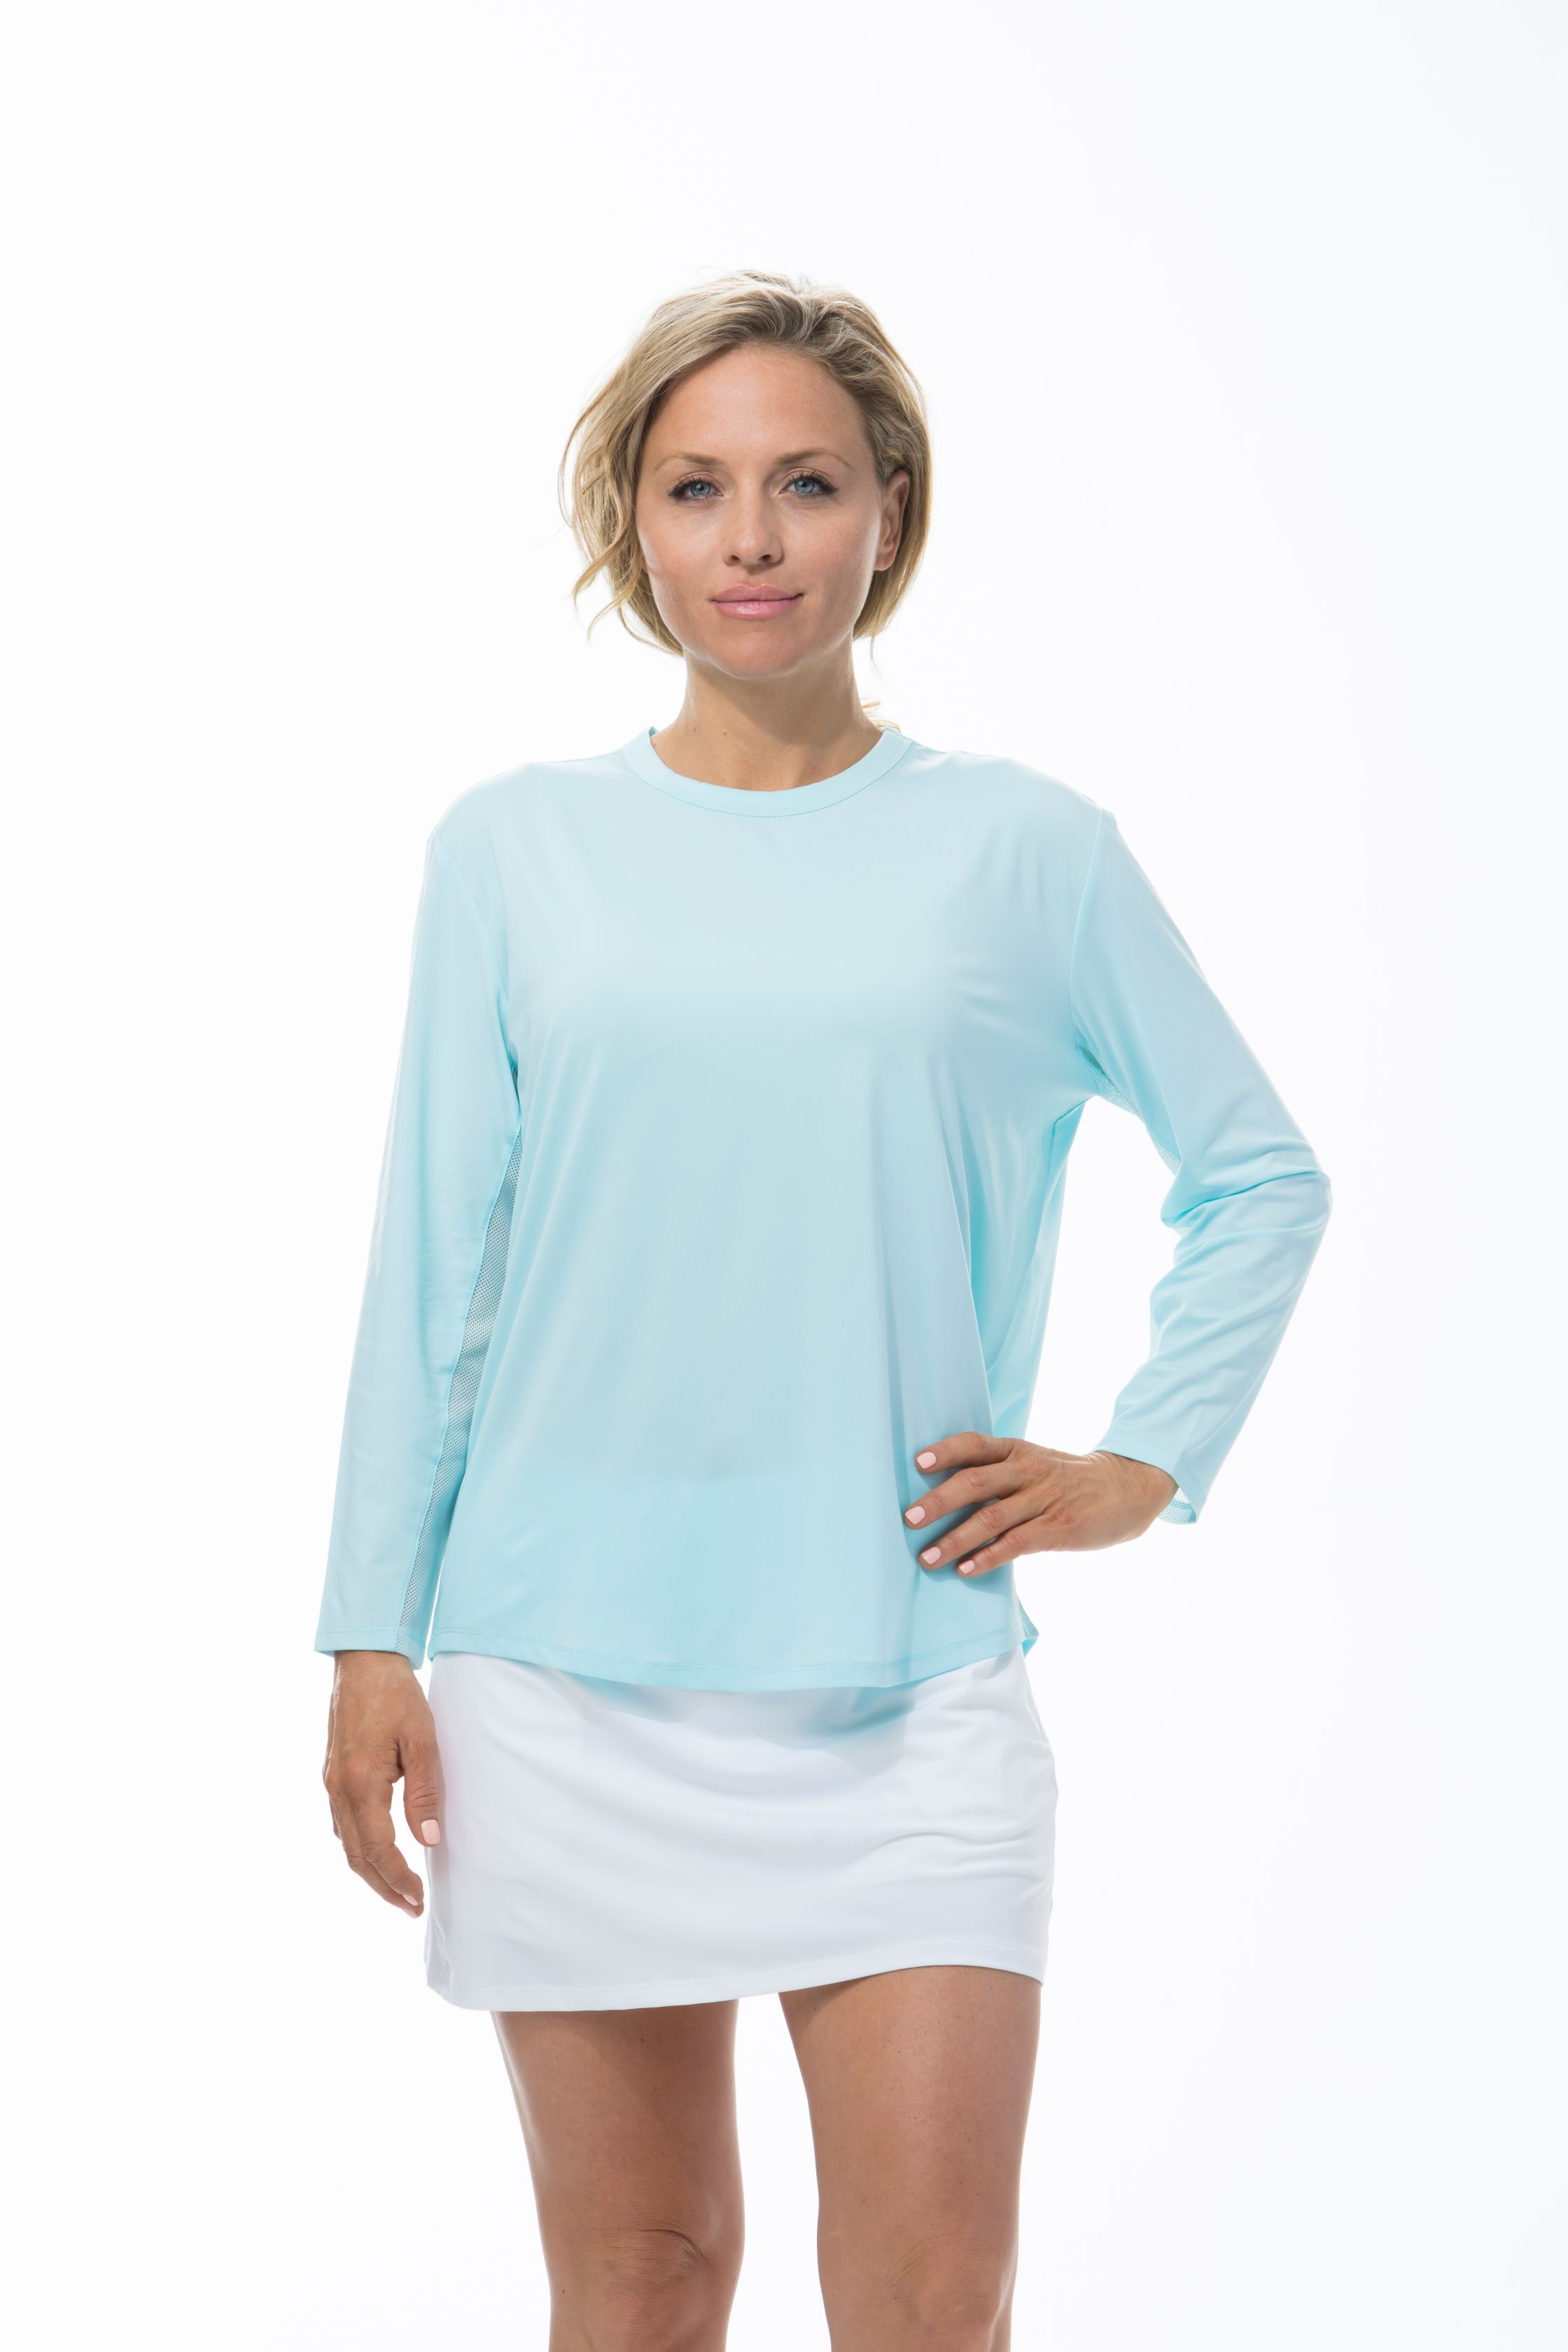 900730 Sunglow Relaxed Tee. Clearwater Blue